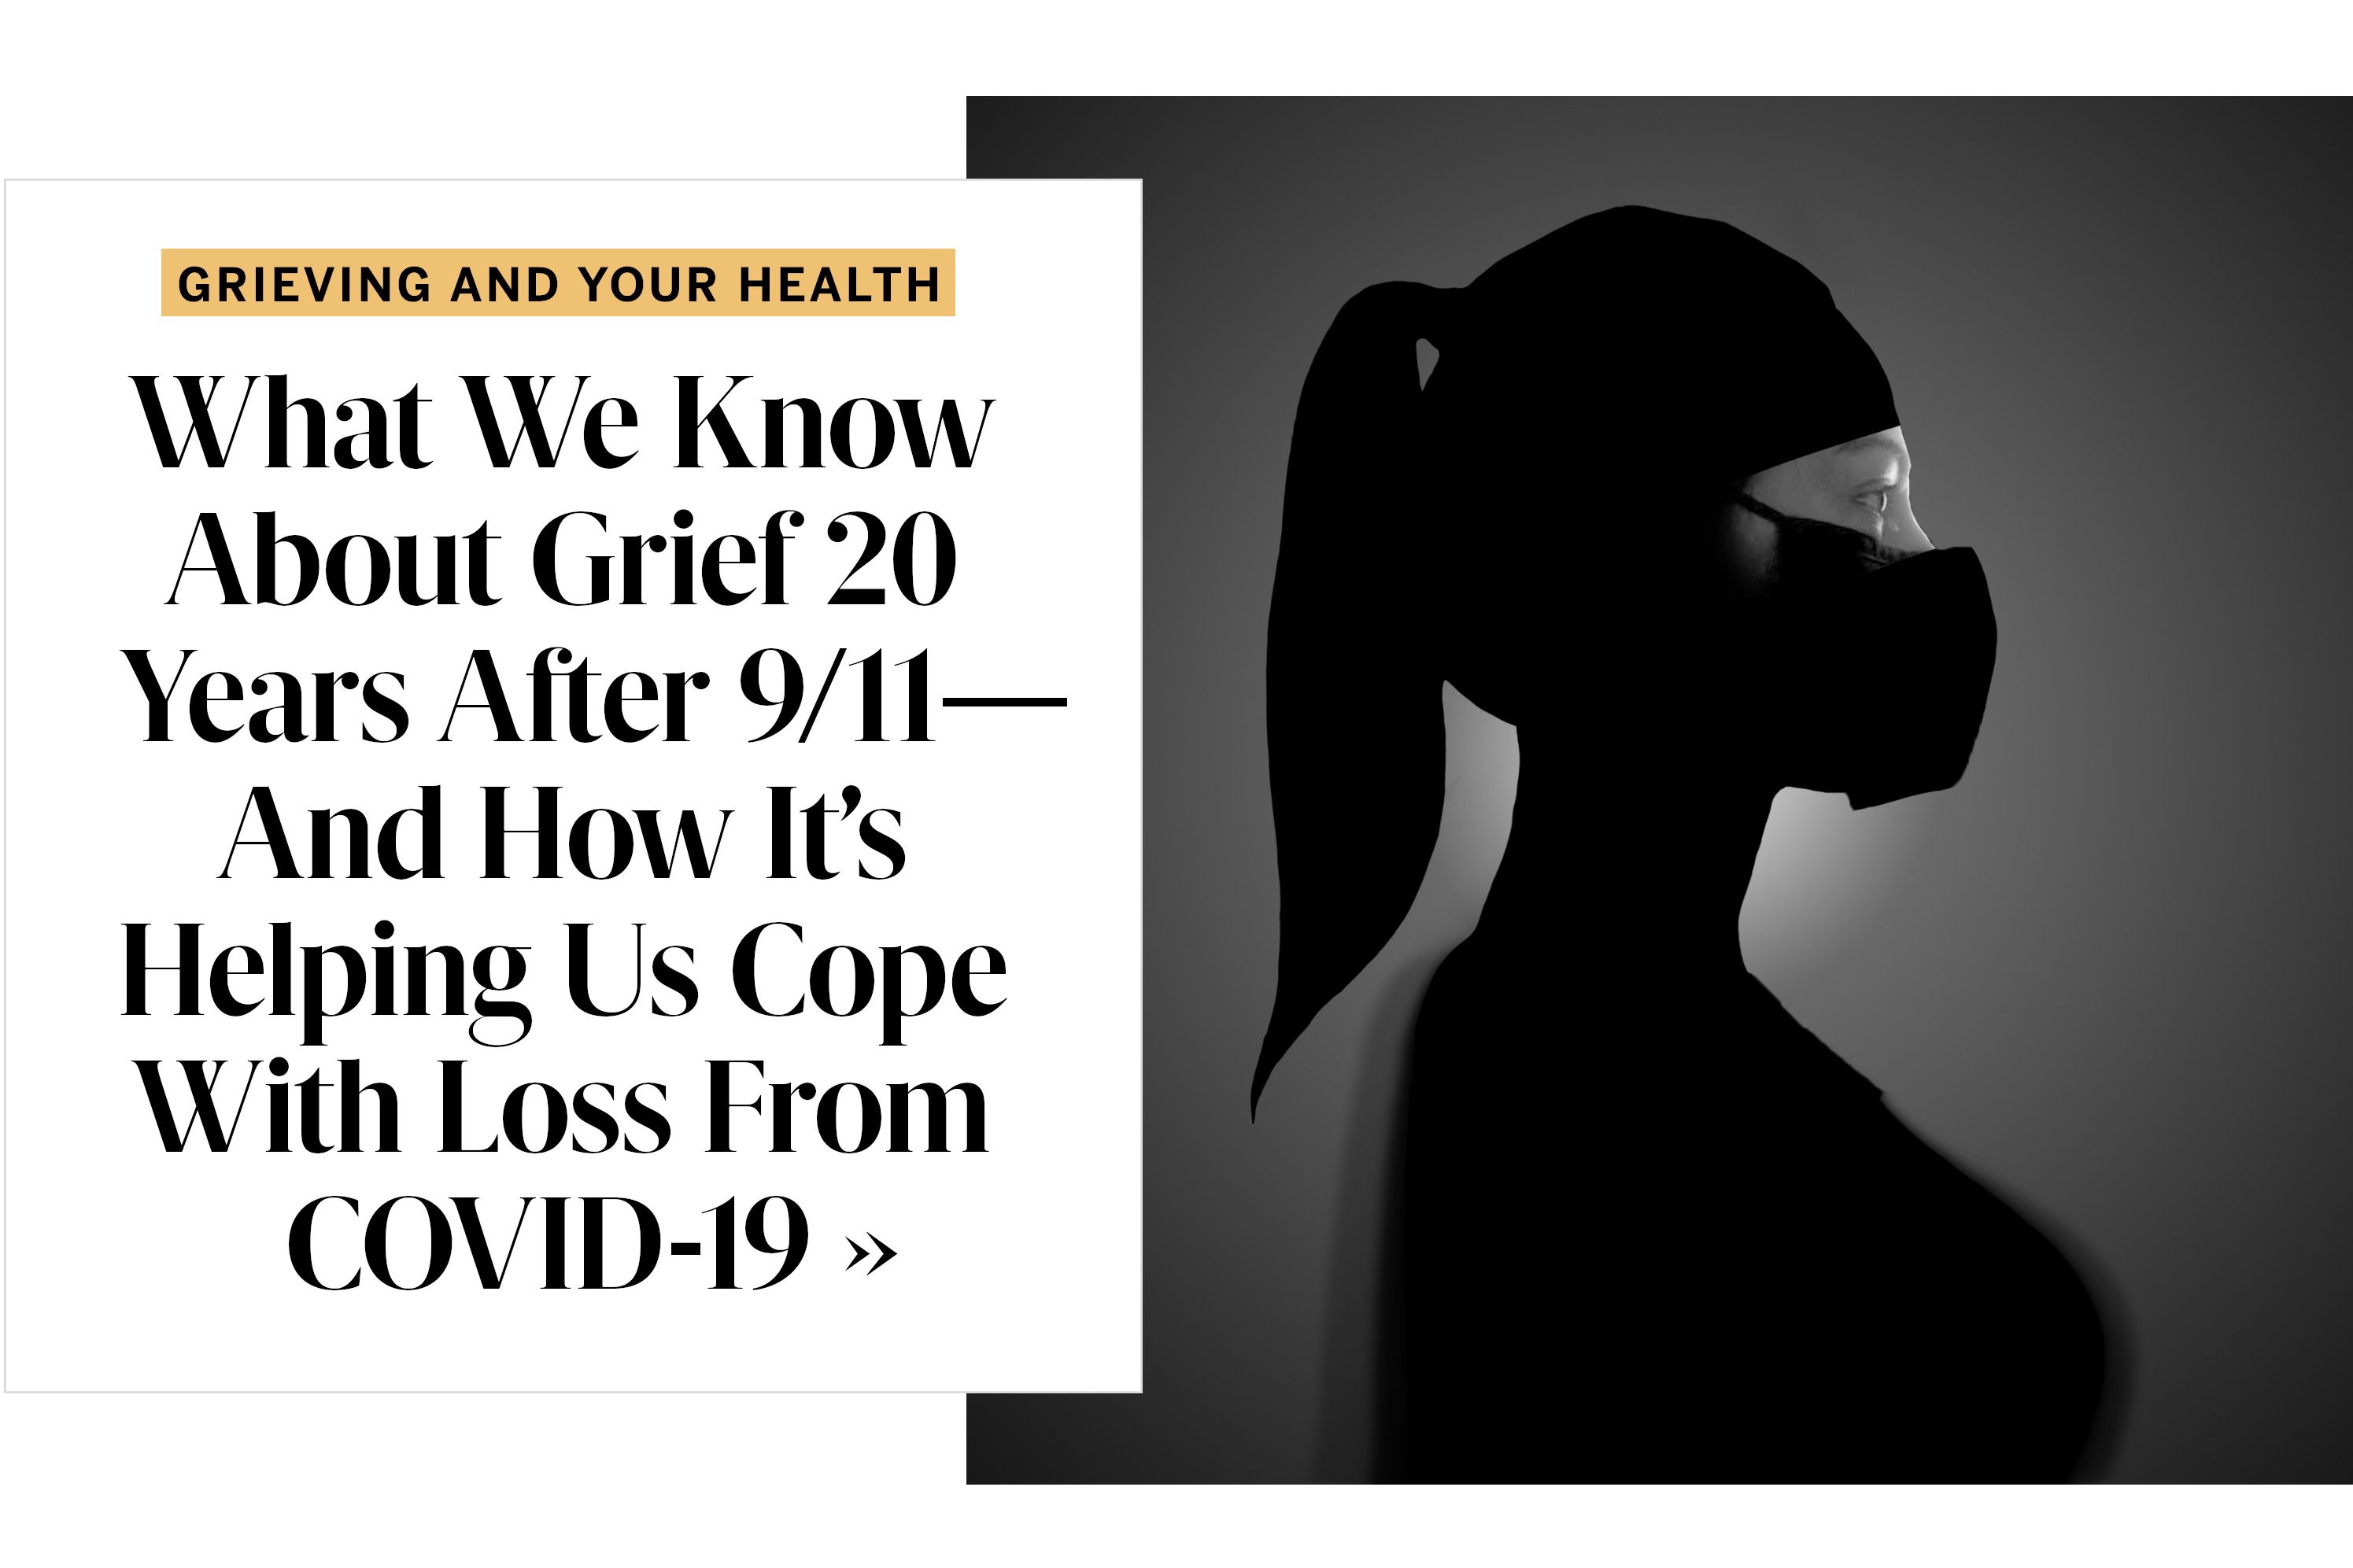 What We Know About Grief 20 Years After 9/11—And How It's Helping Us Cope With Loss From COVID-19